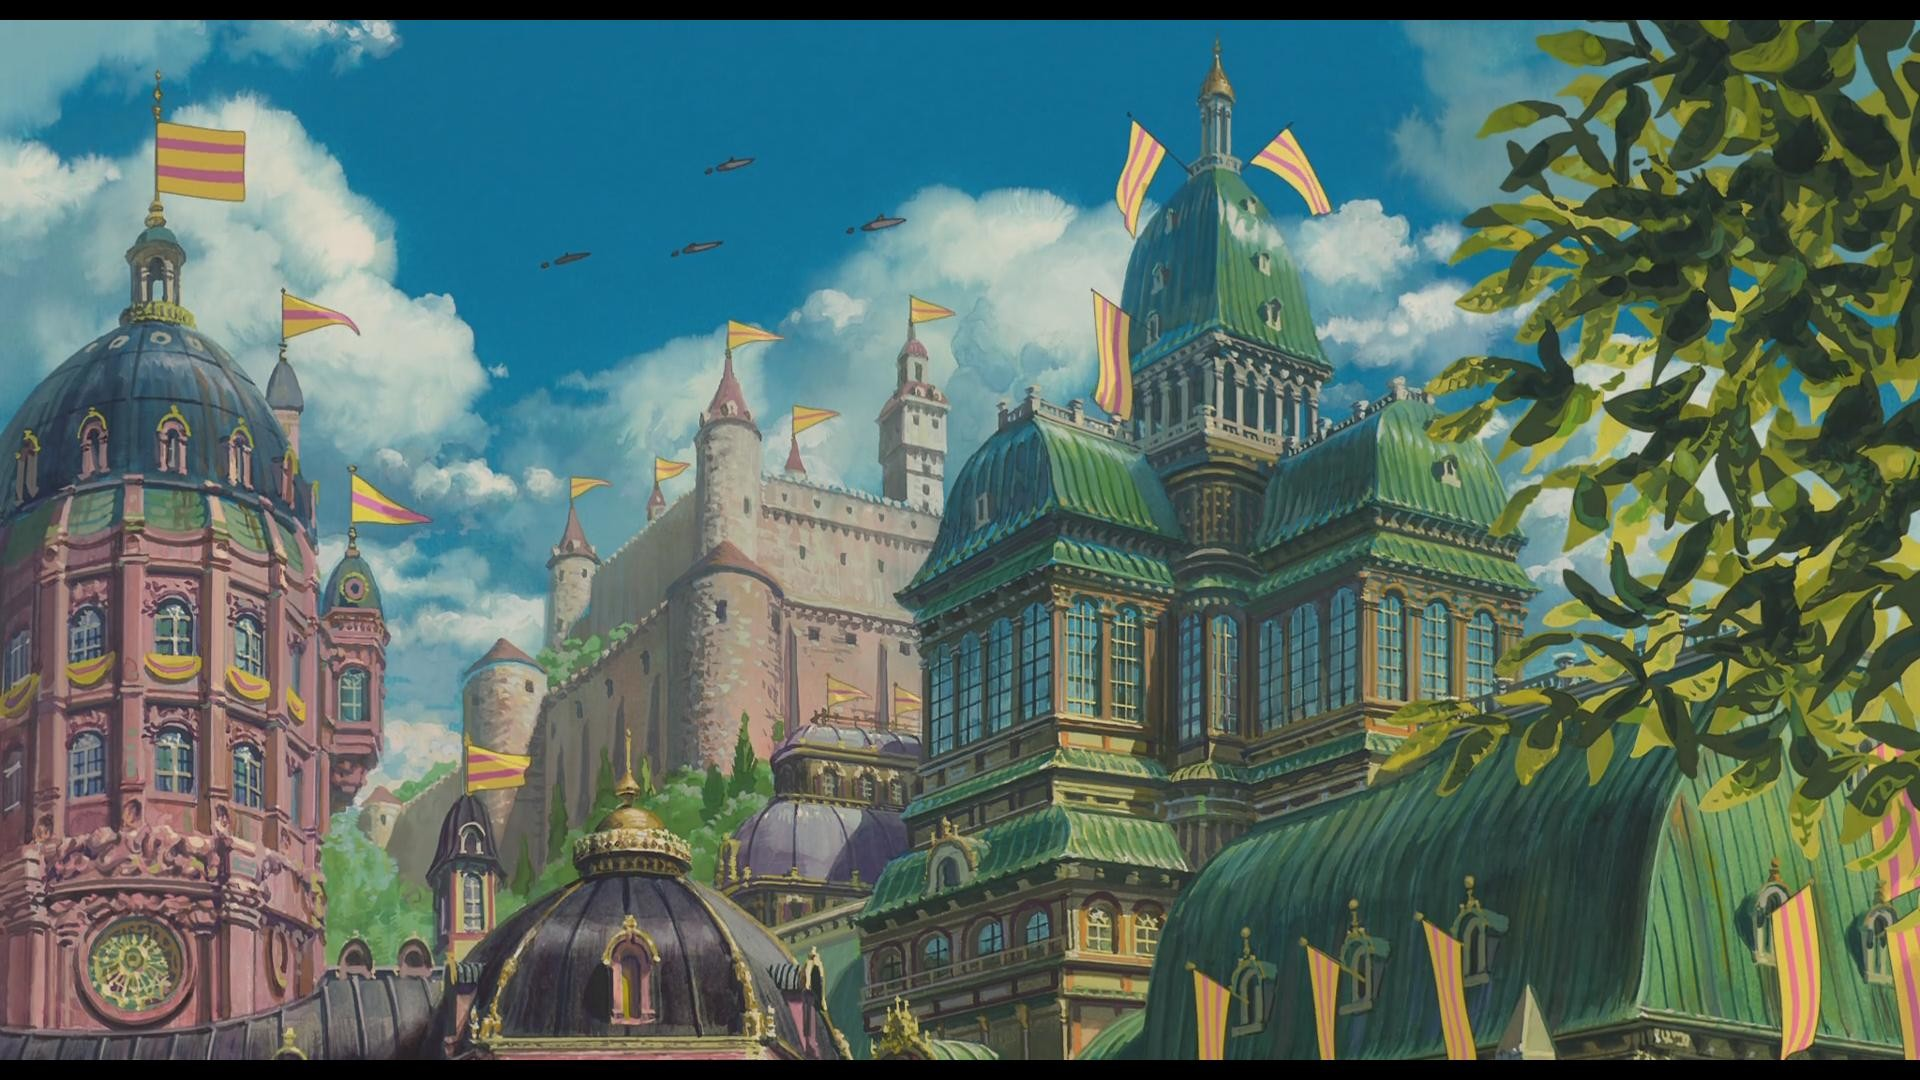 howl's moving castle wallpaper images (8) – HD Wallpapers Buzz